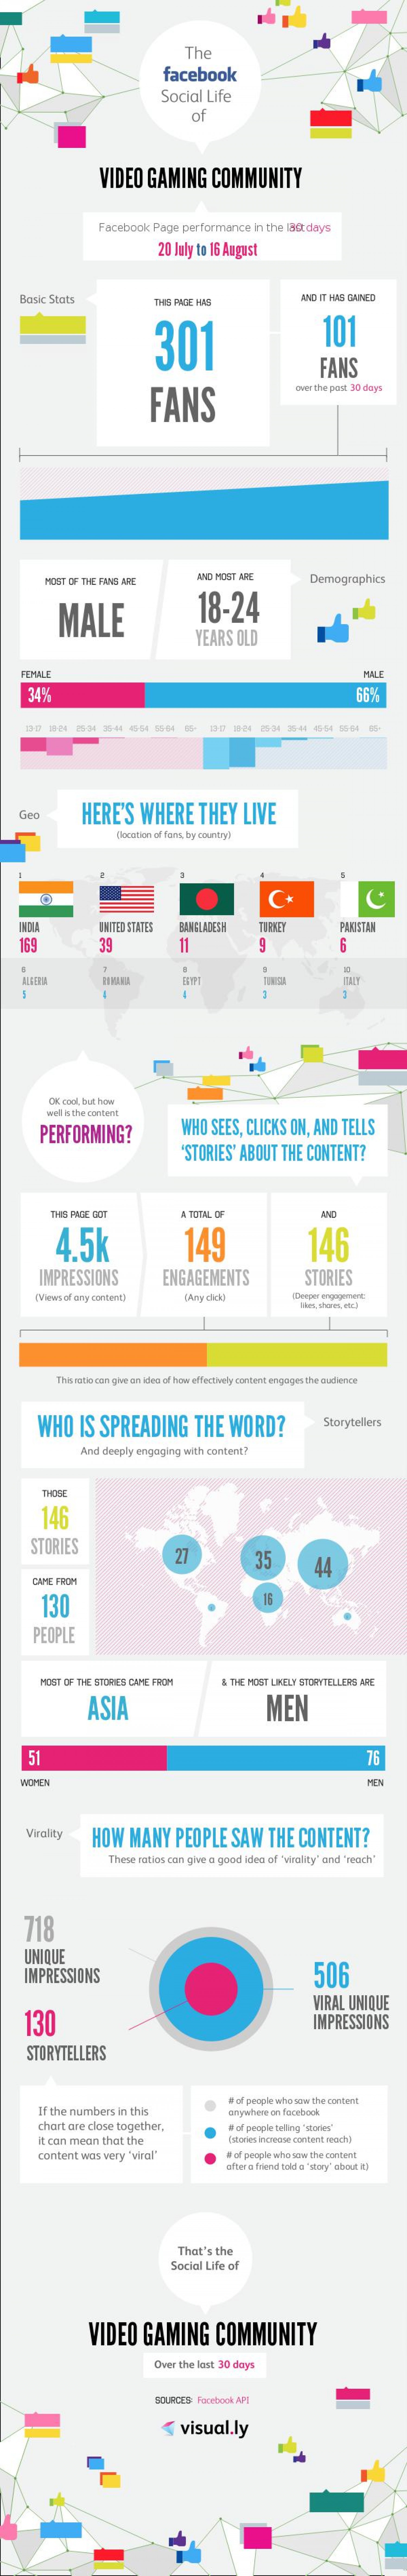 Video Gaming Community Infographic